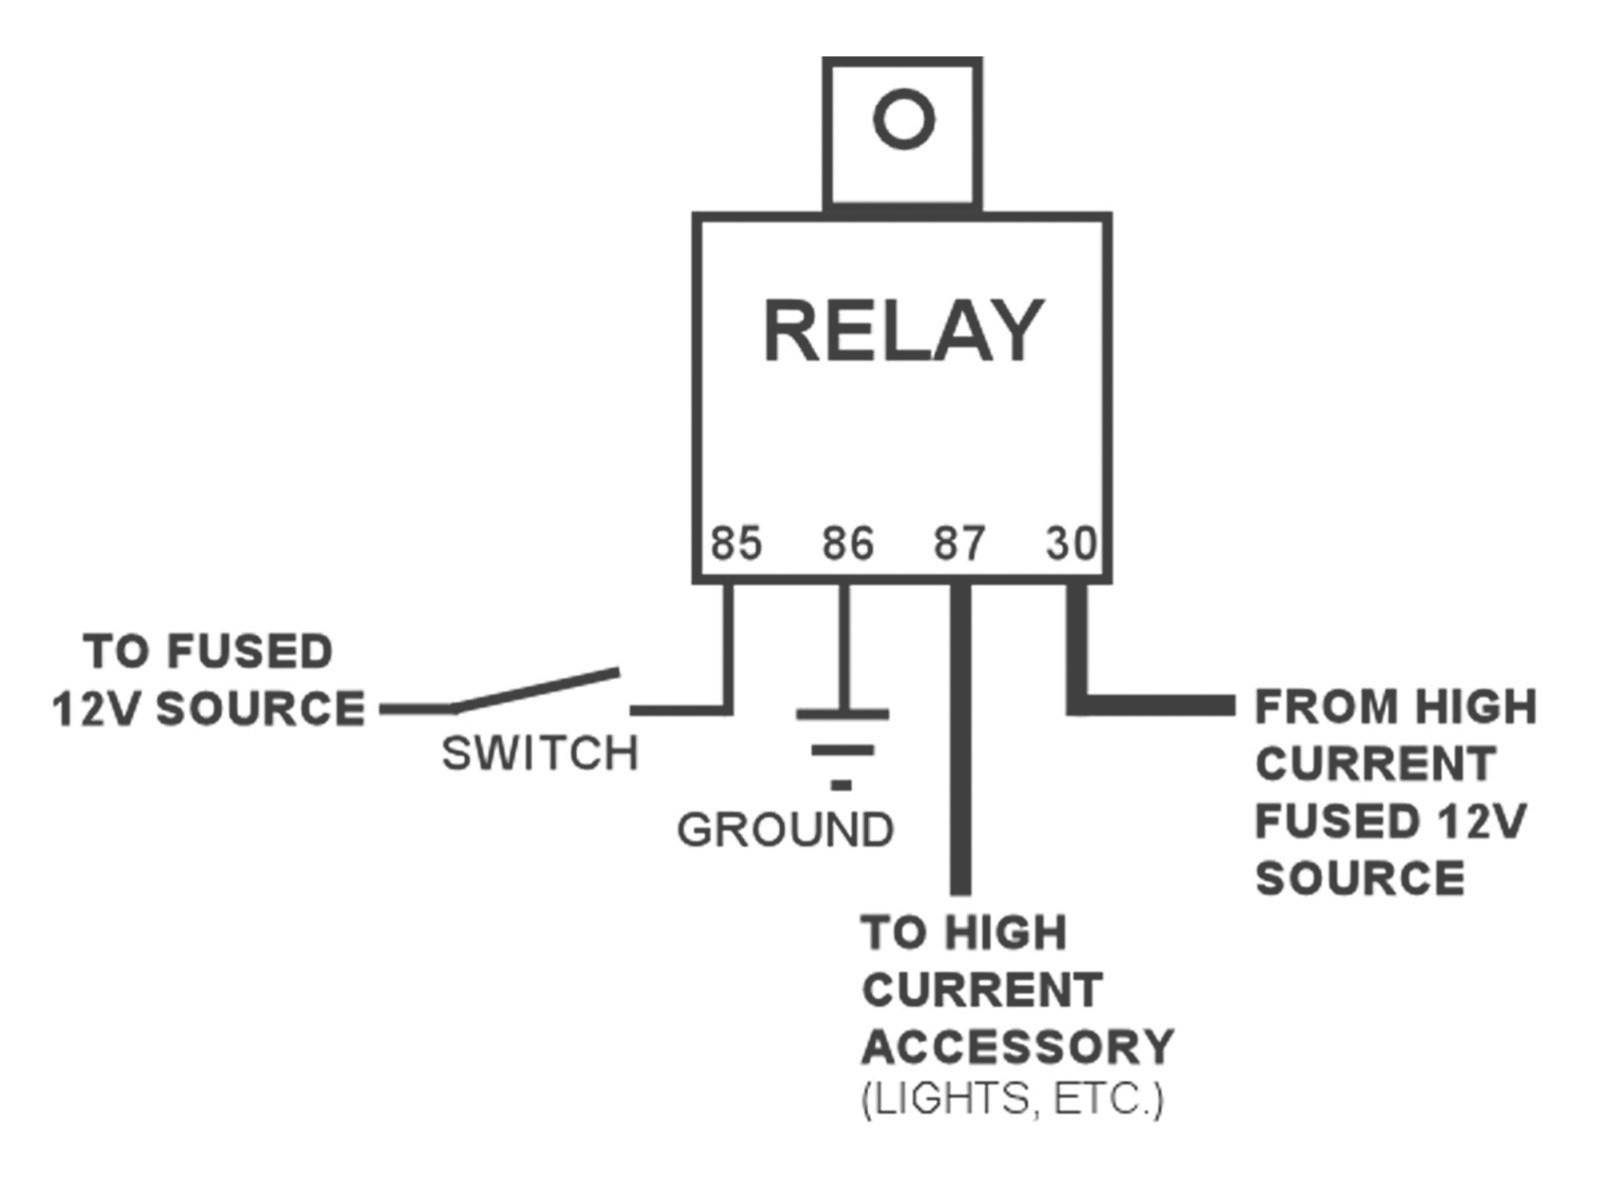 Rib Relay Wiring Diagram Ribu1C Rd And Rib Relay Wiring Diagram